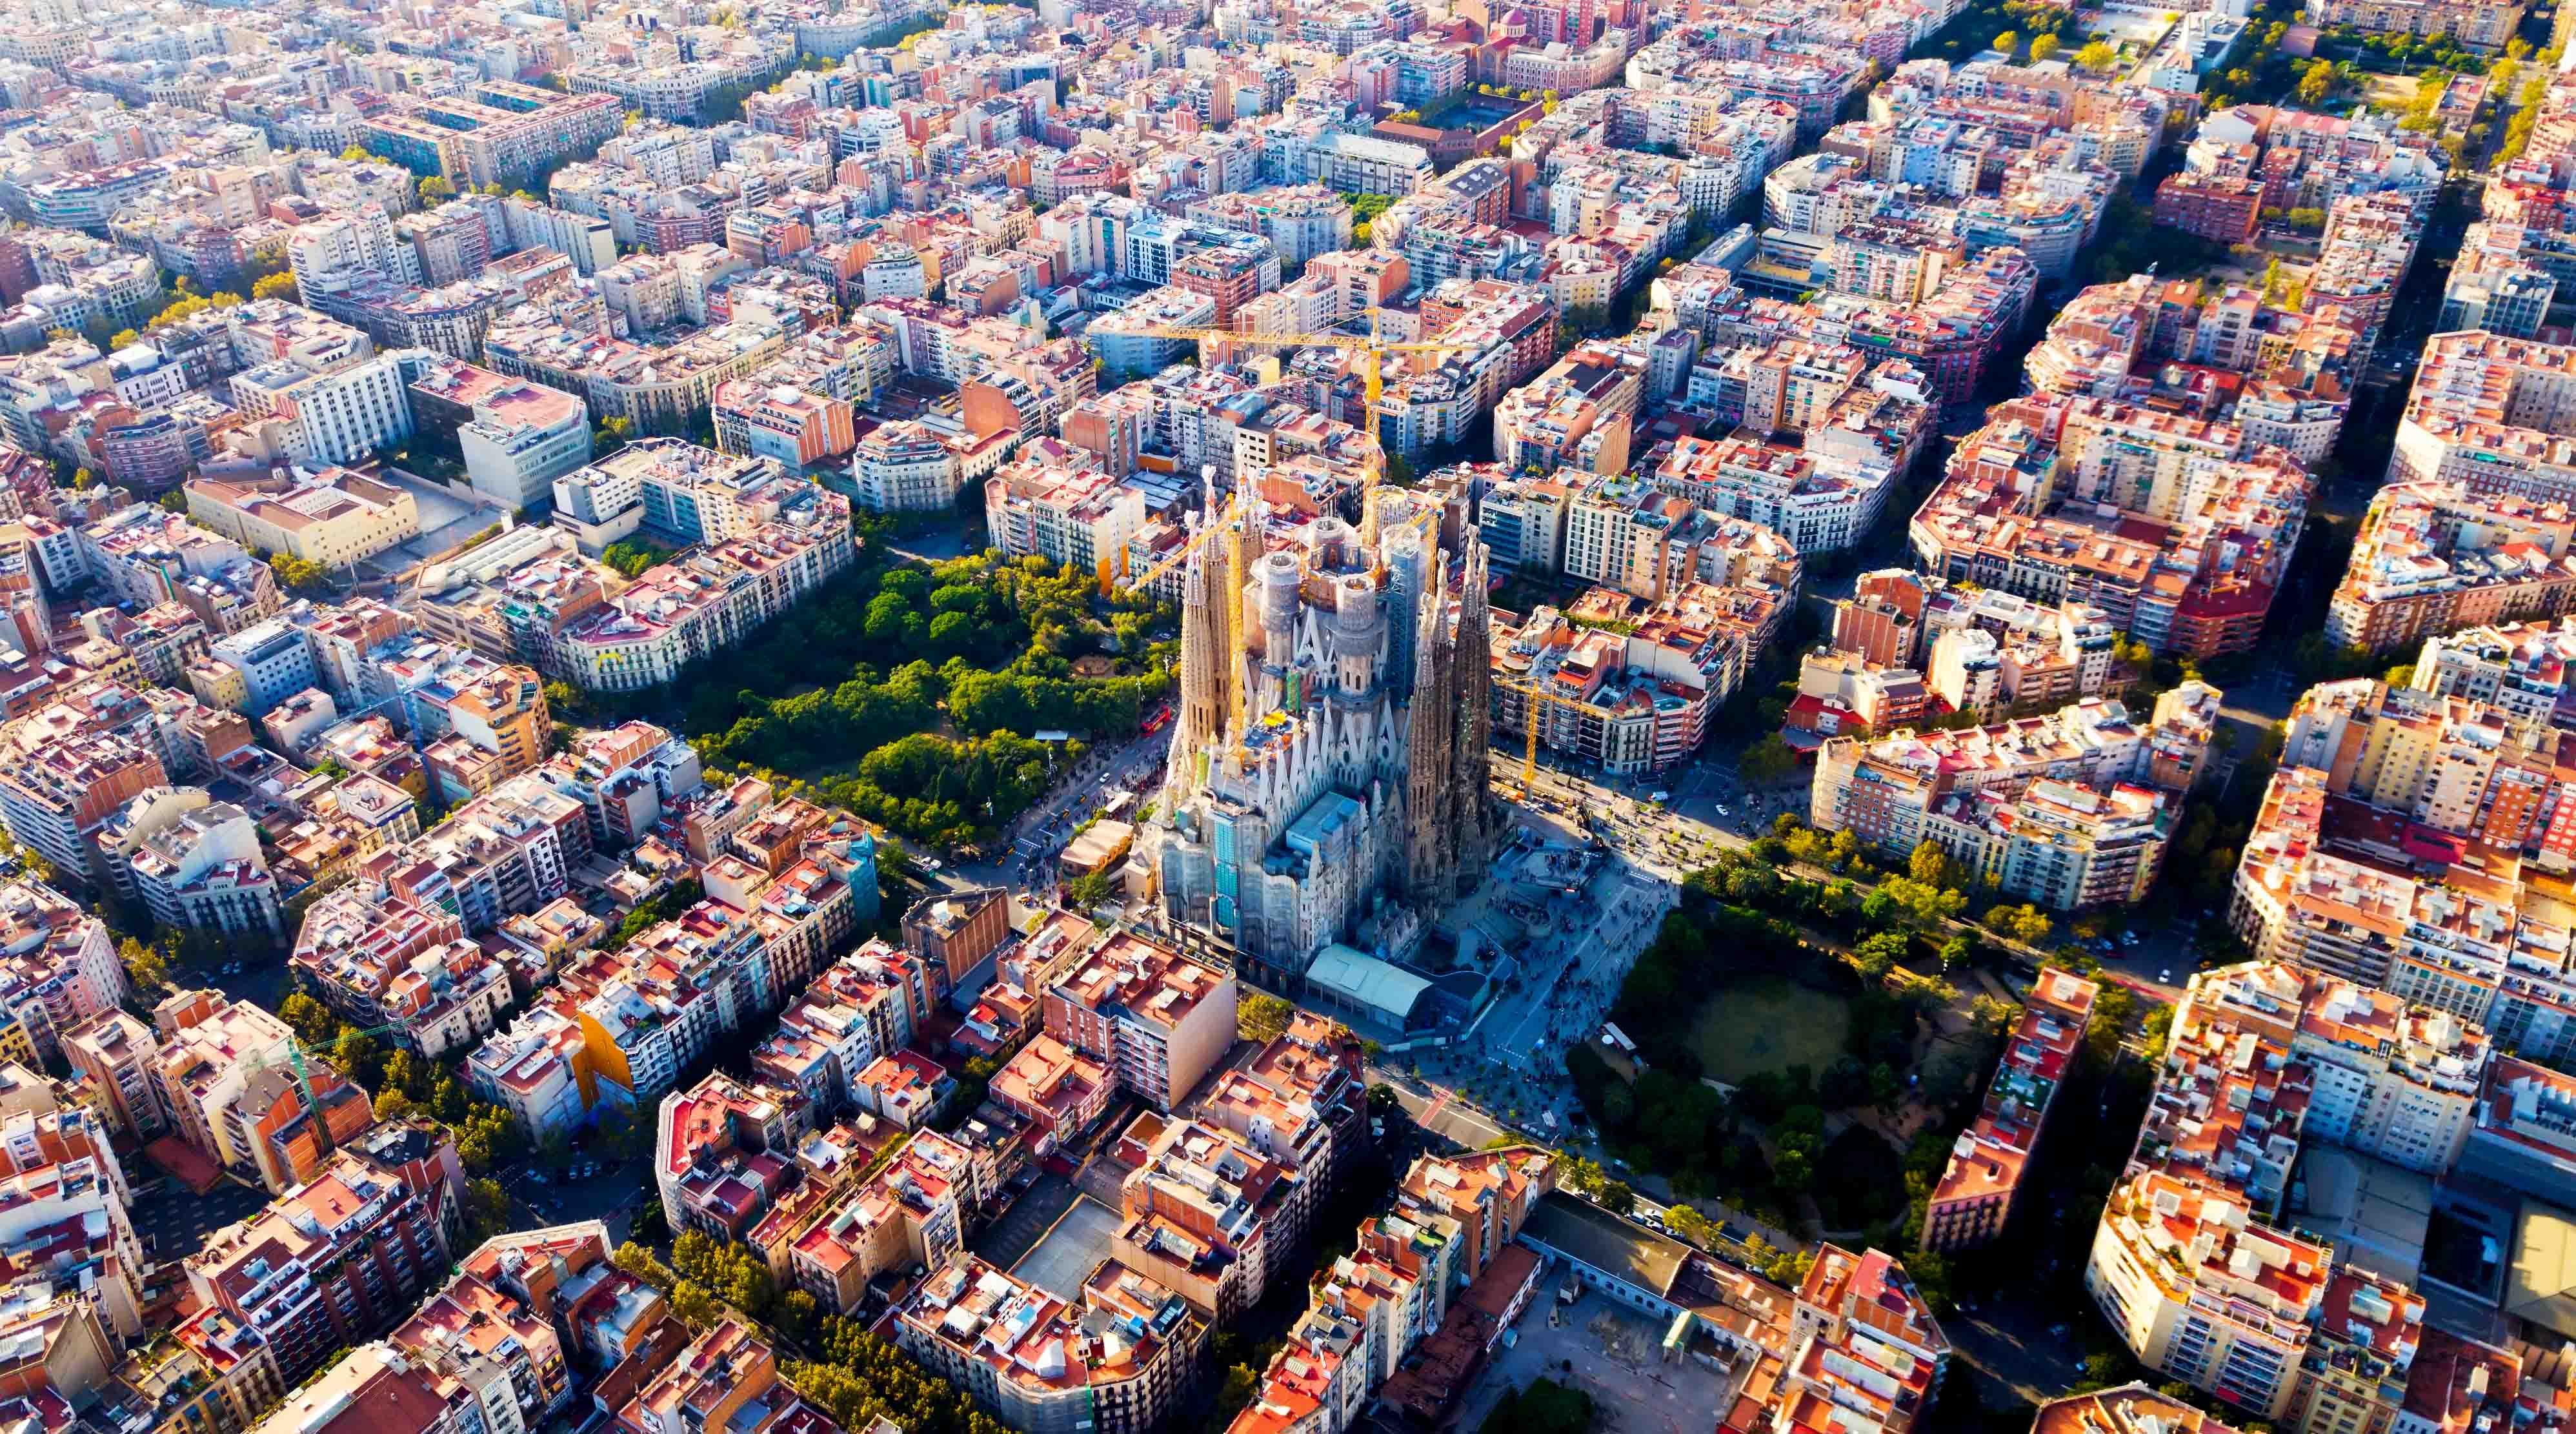 IESE's Global Alumni Reunion 2019 kicks off in Barcelona